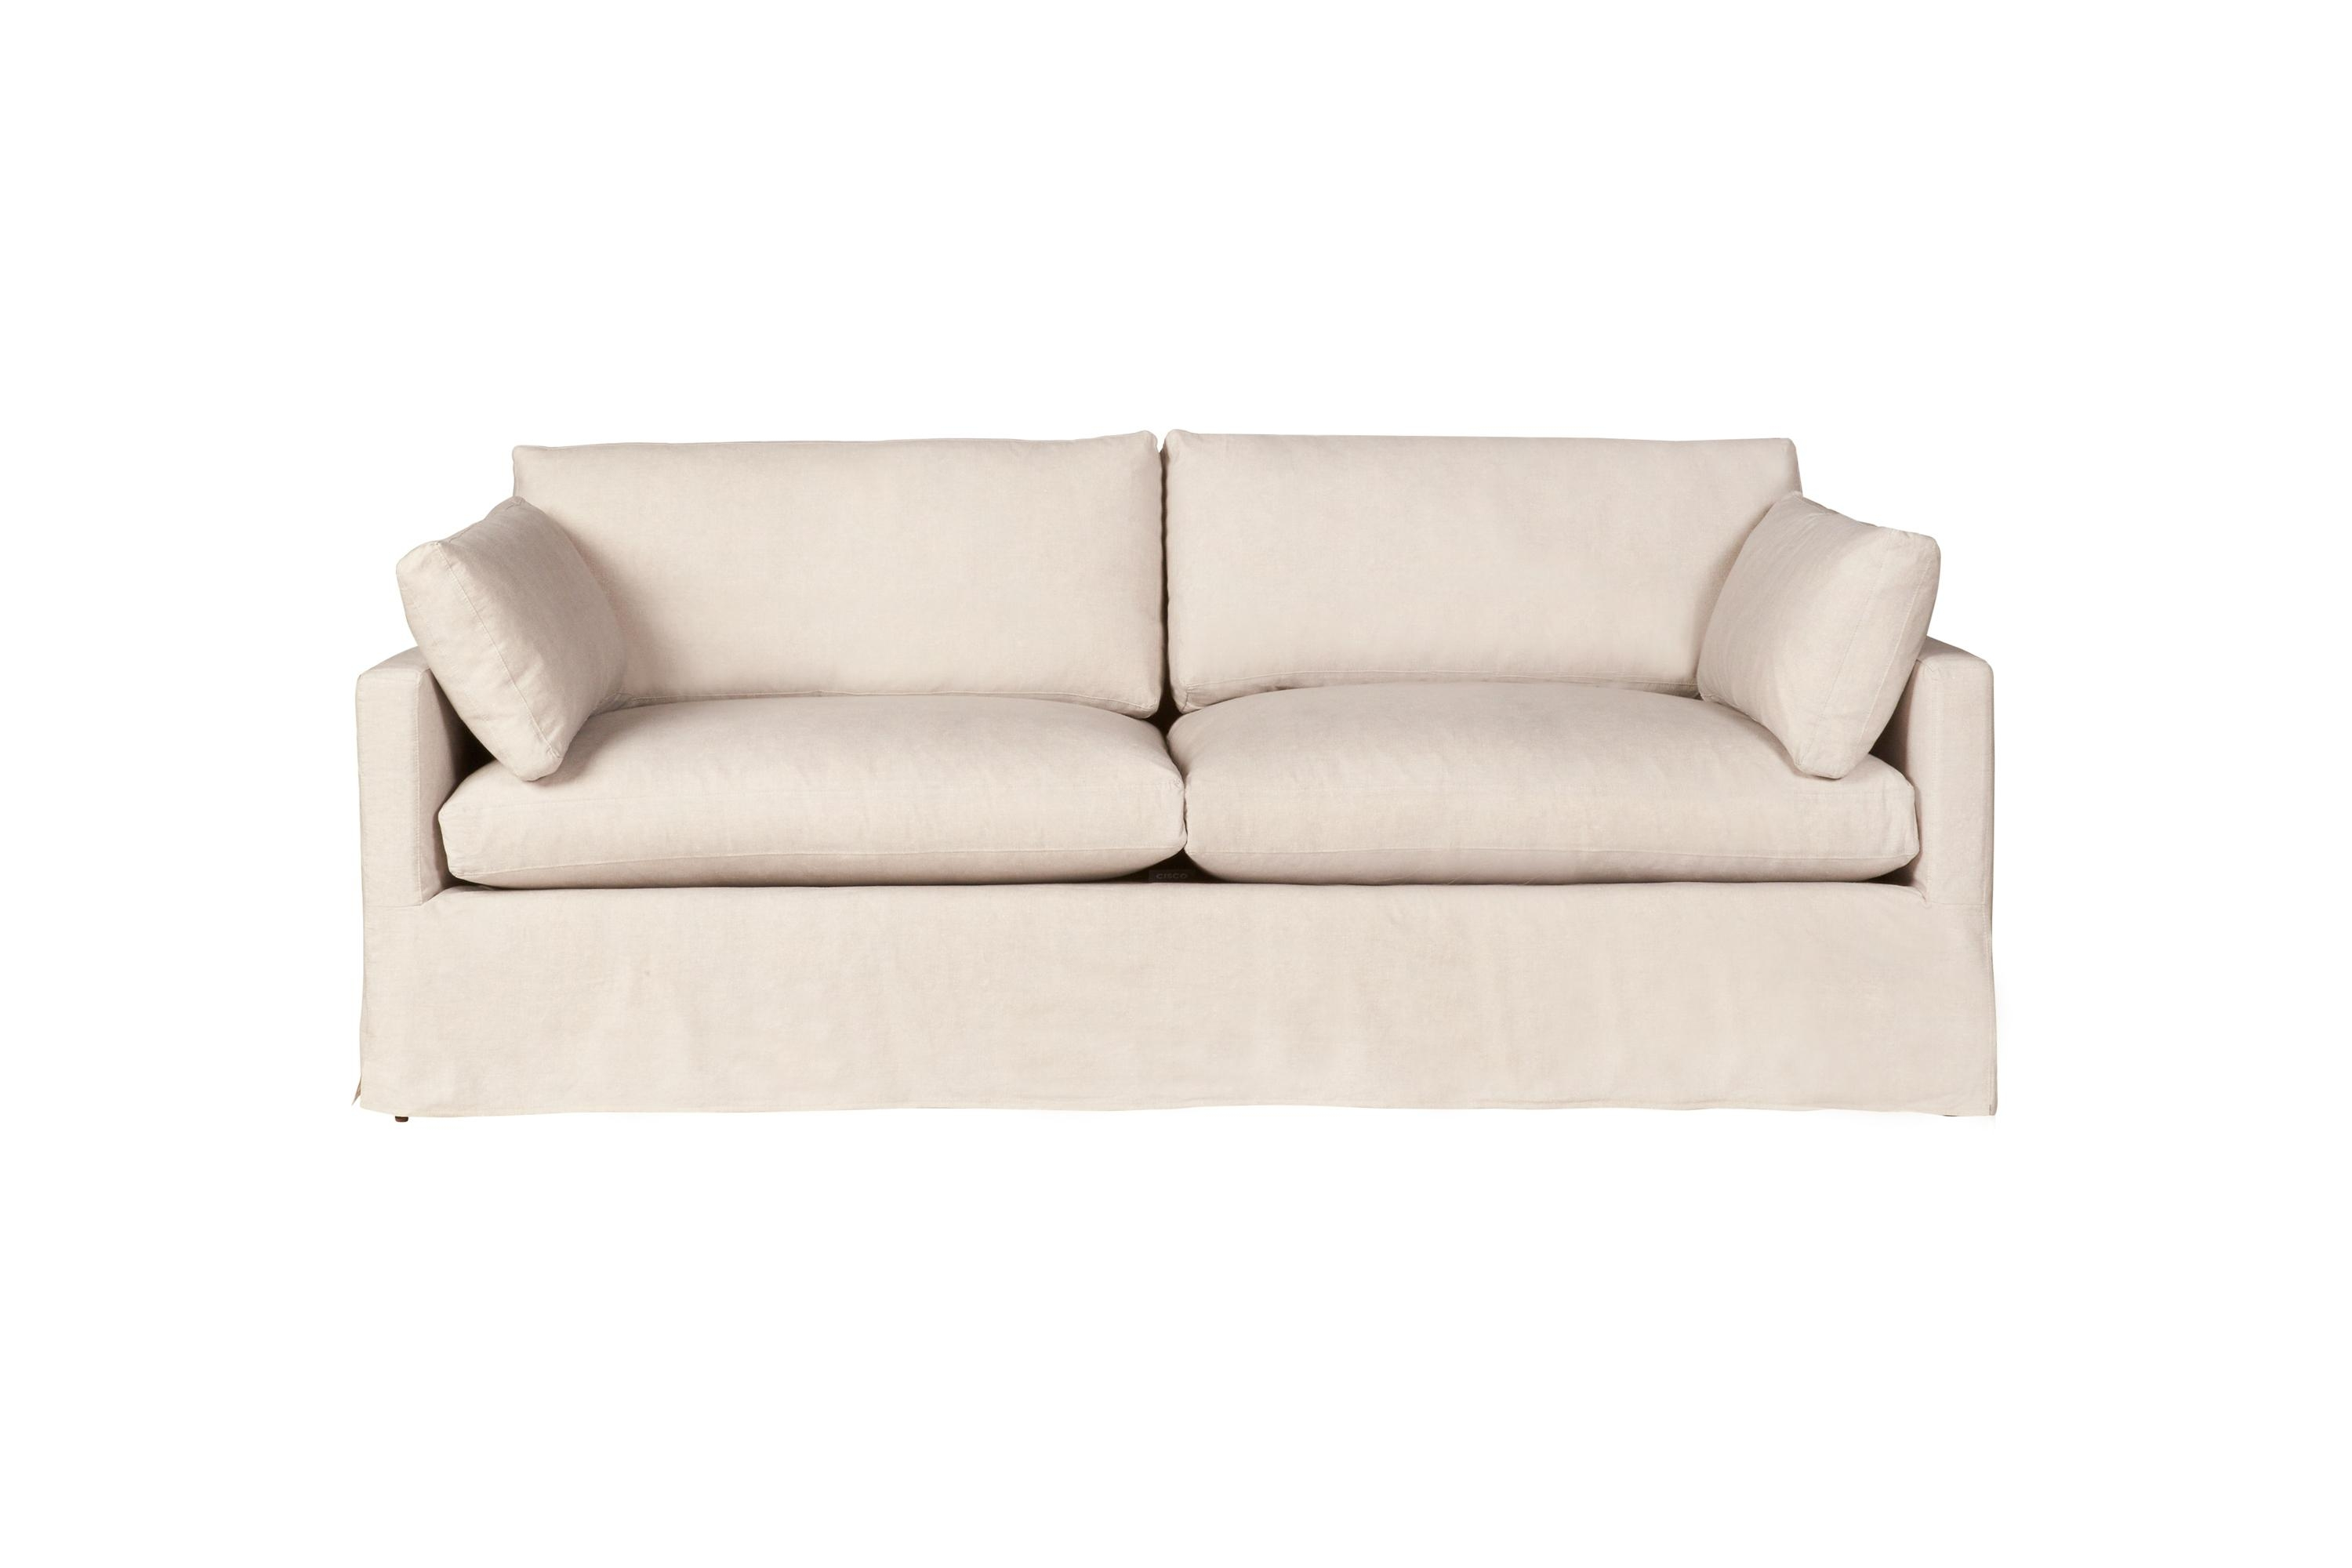 armless sofas faux leather cheap 20 best ideas sofa slipcovers